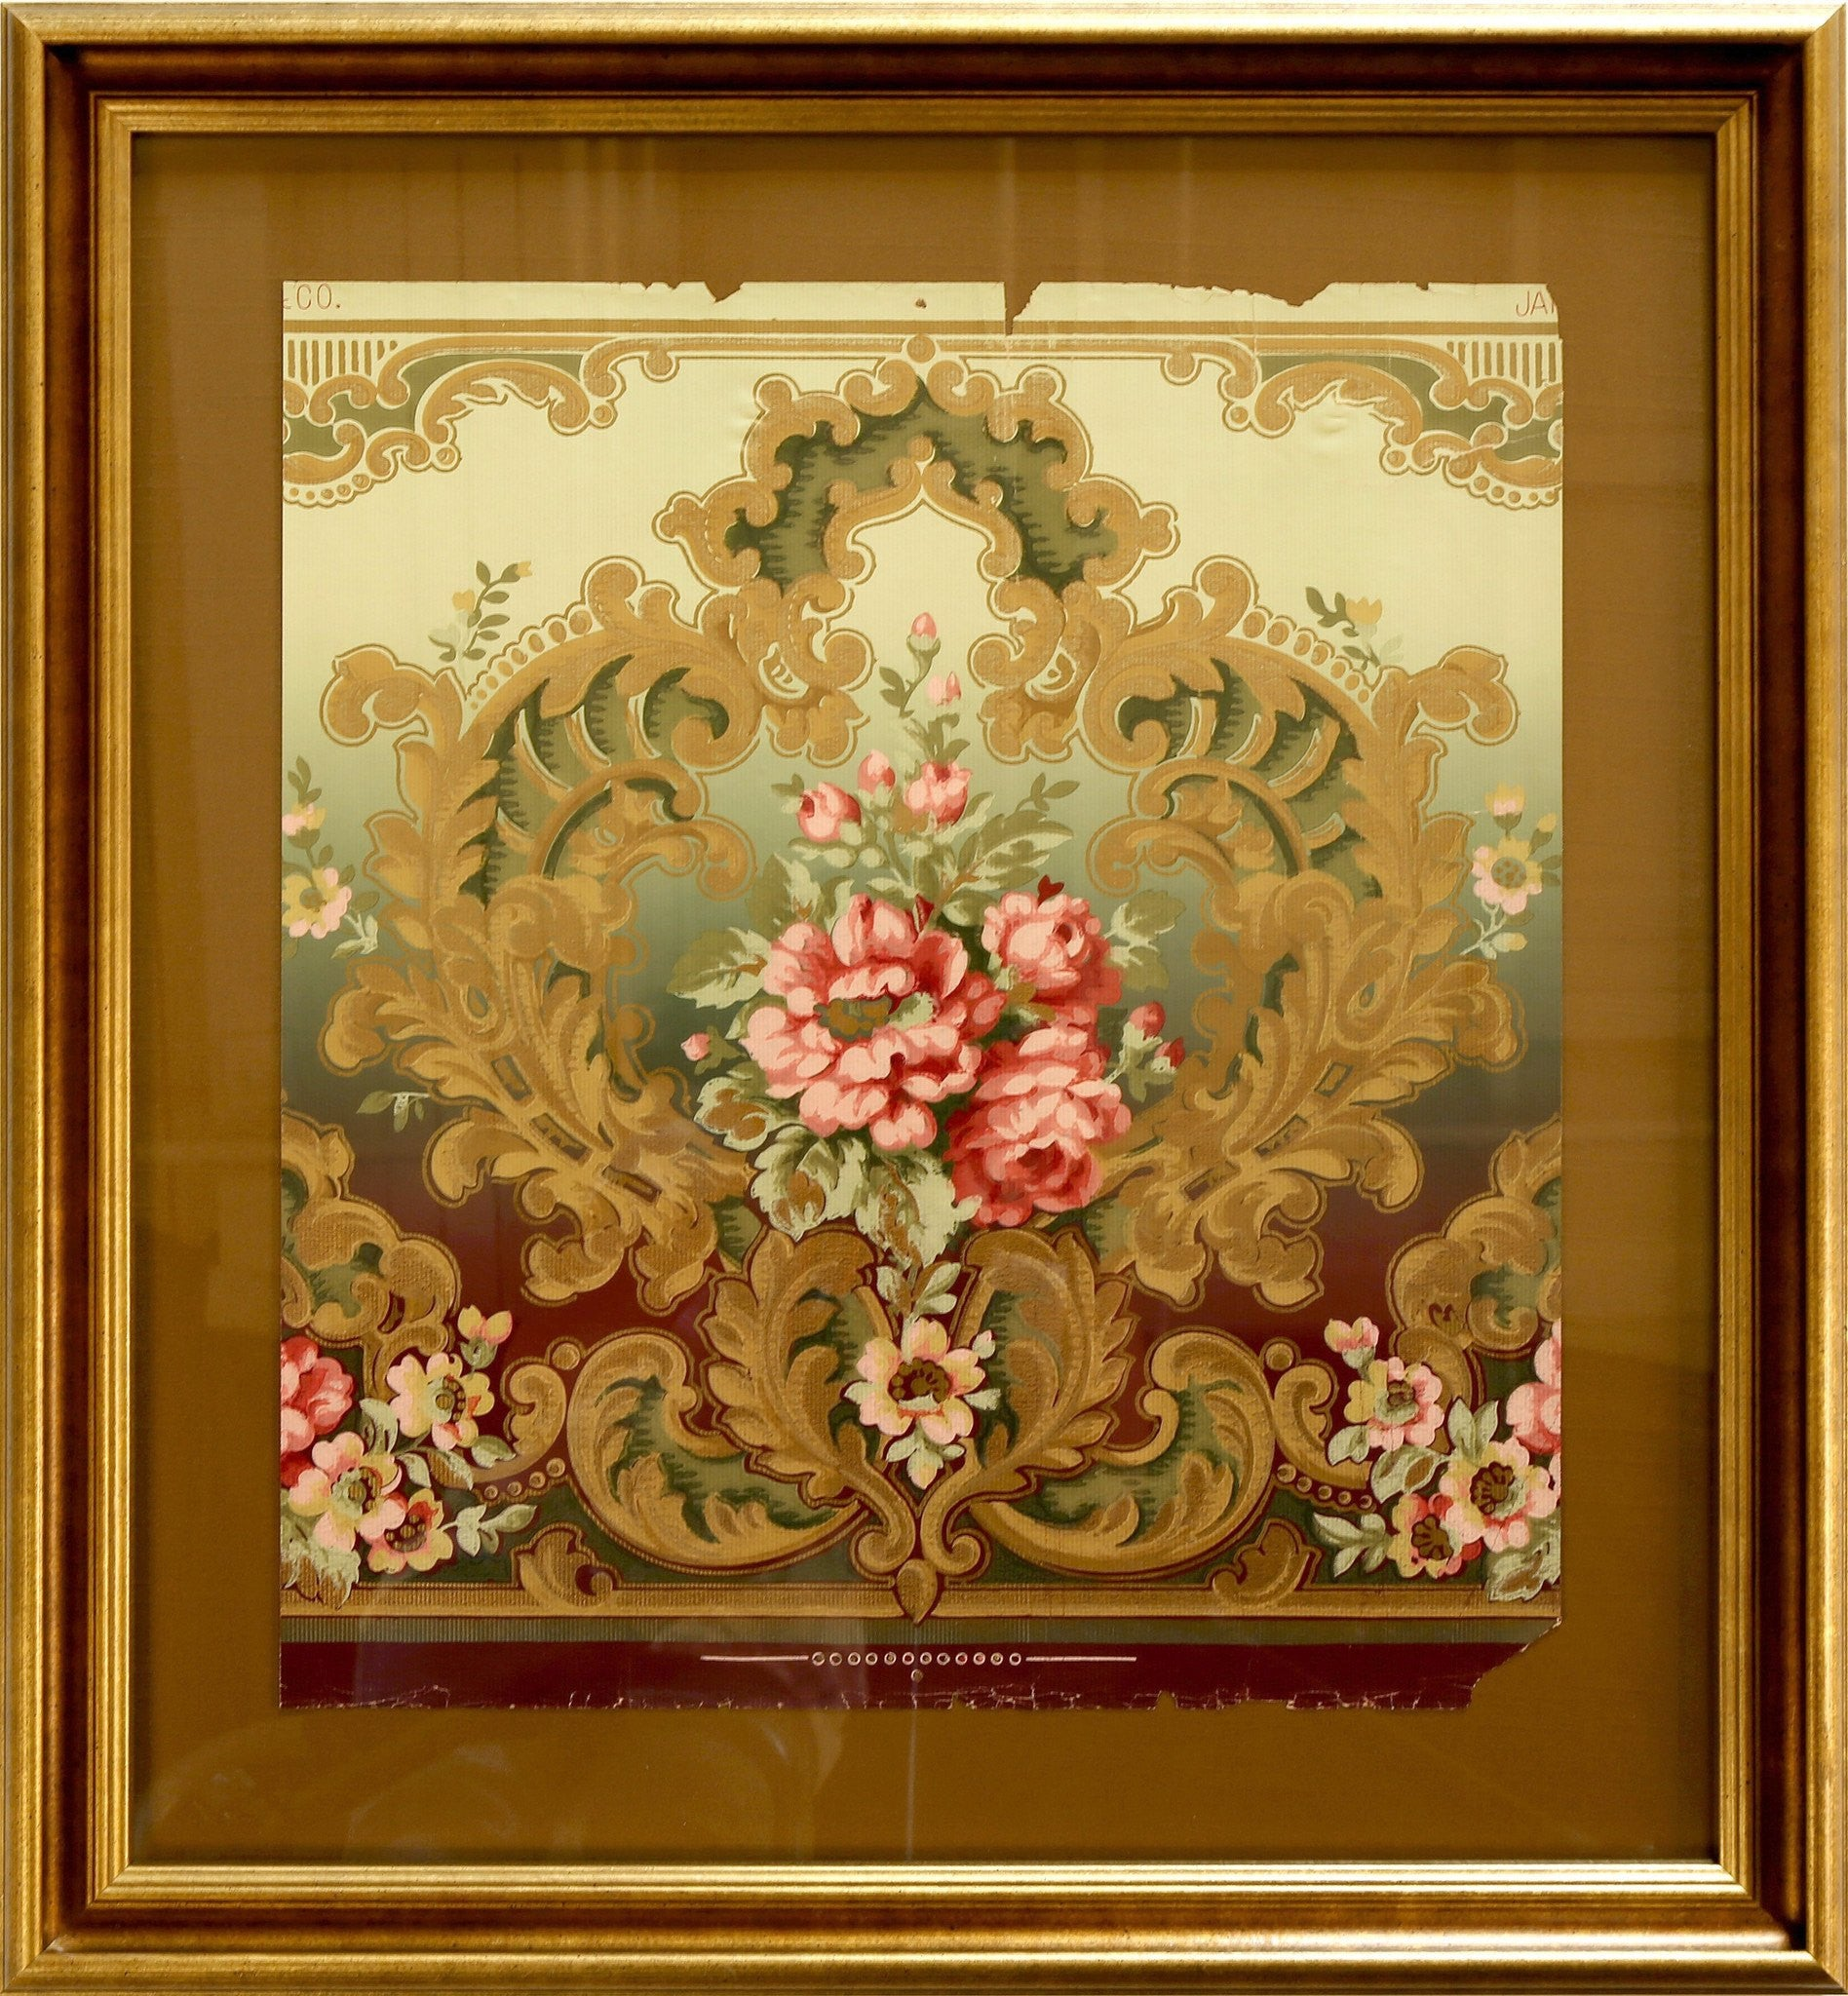 Embossed Gilt Rococo Floral Frieze/Antique Wallpaper/Wall Art ...